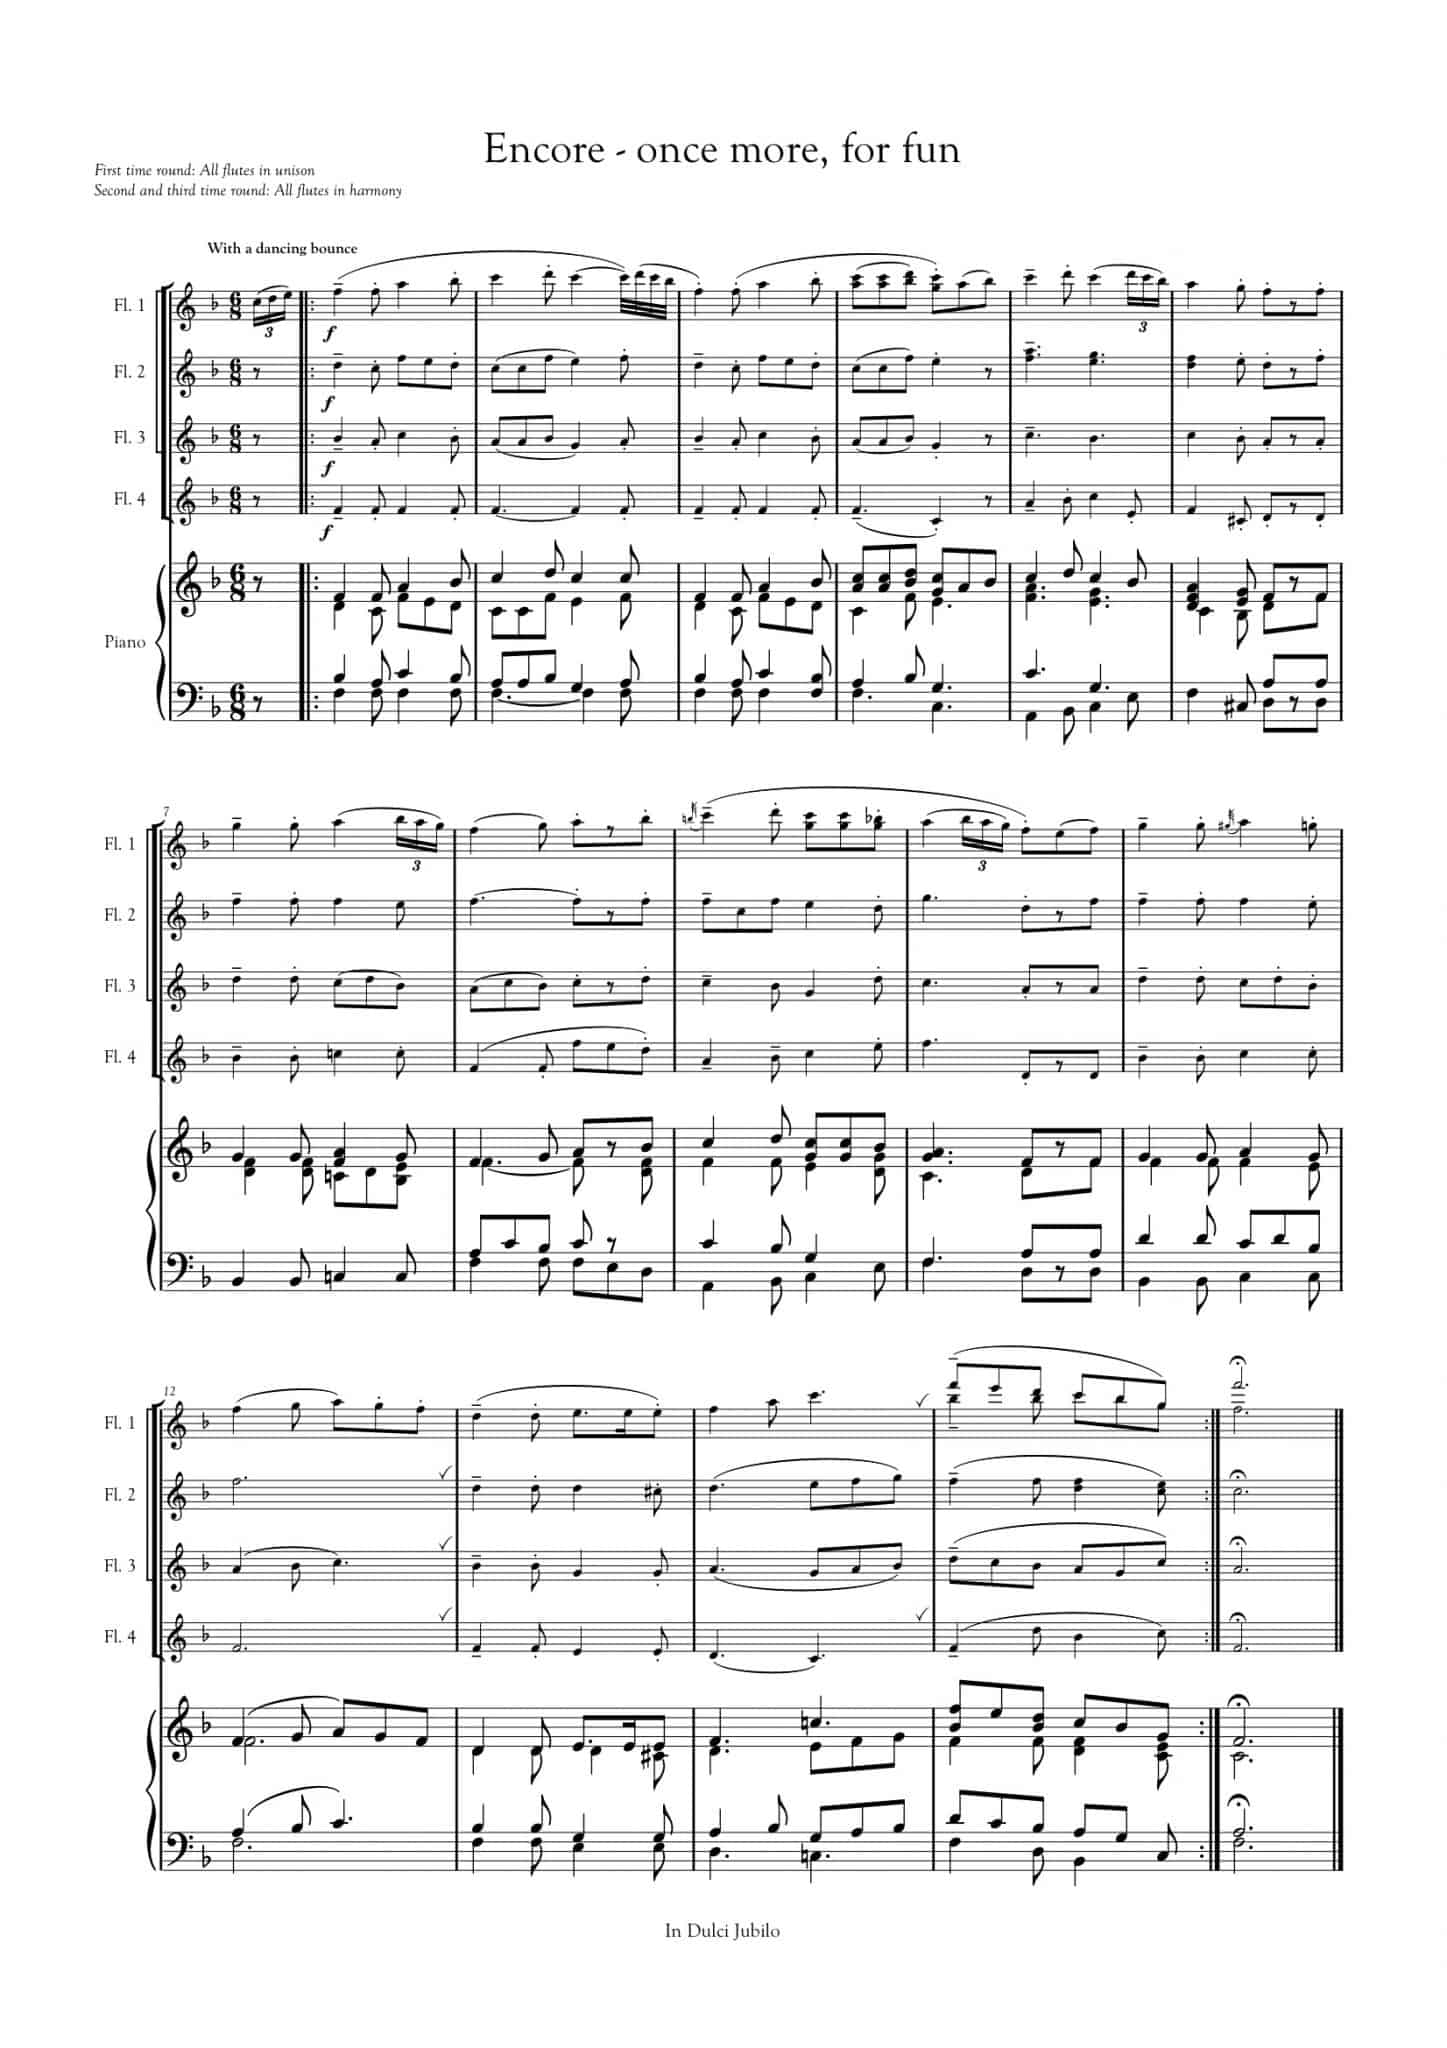 Simply Flute - In Dulci Jubilo - all parts_title sheet_no words copy_Part21